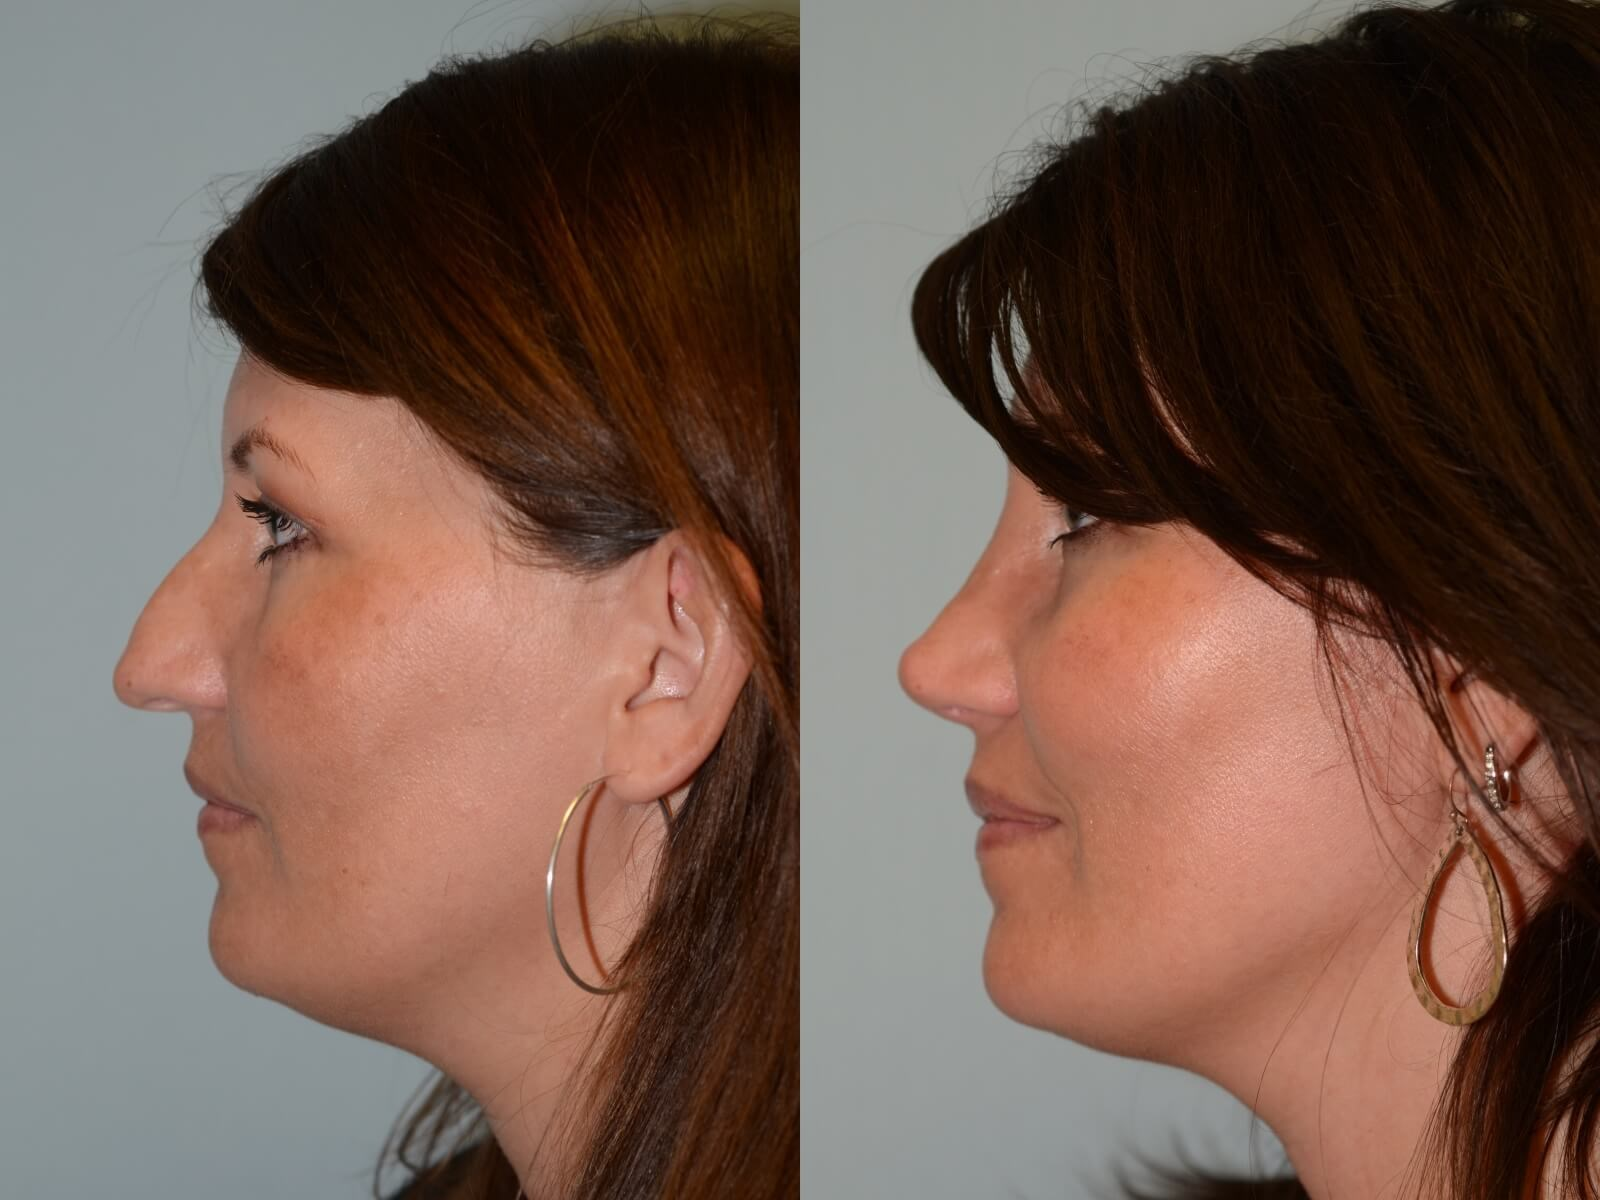 A more feminine nasal tip Before and After